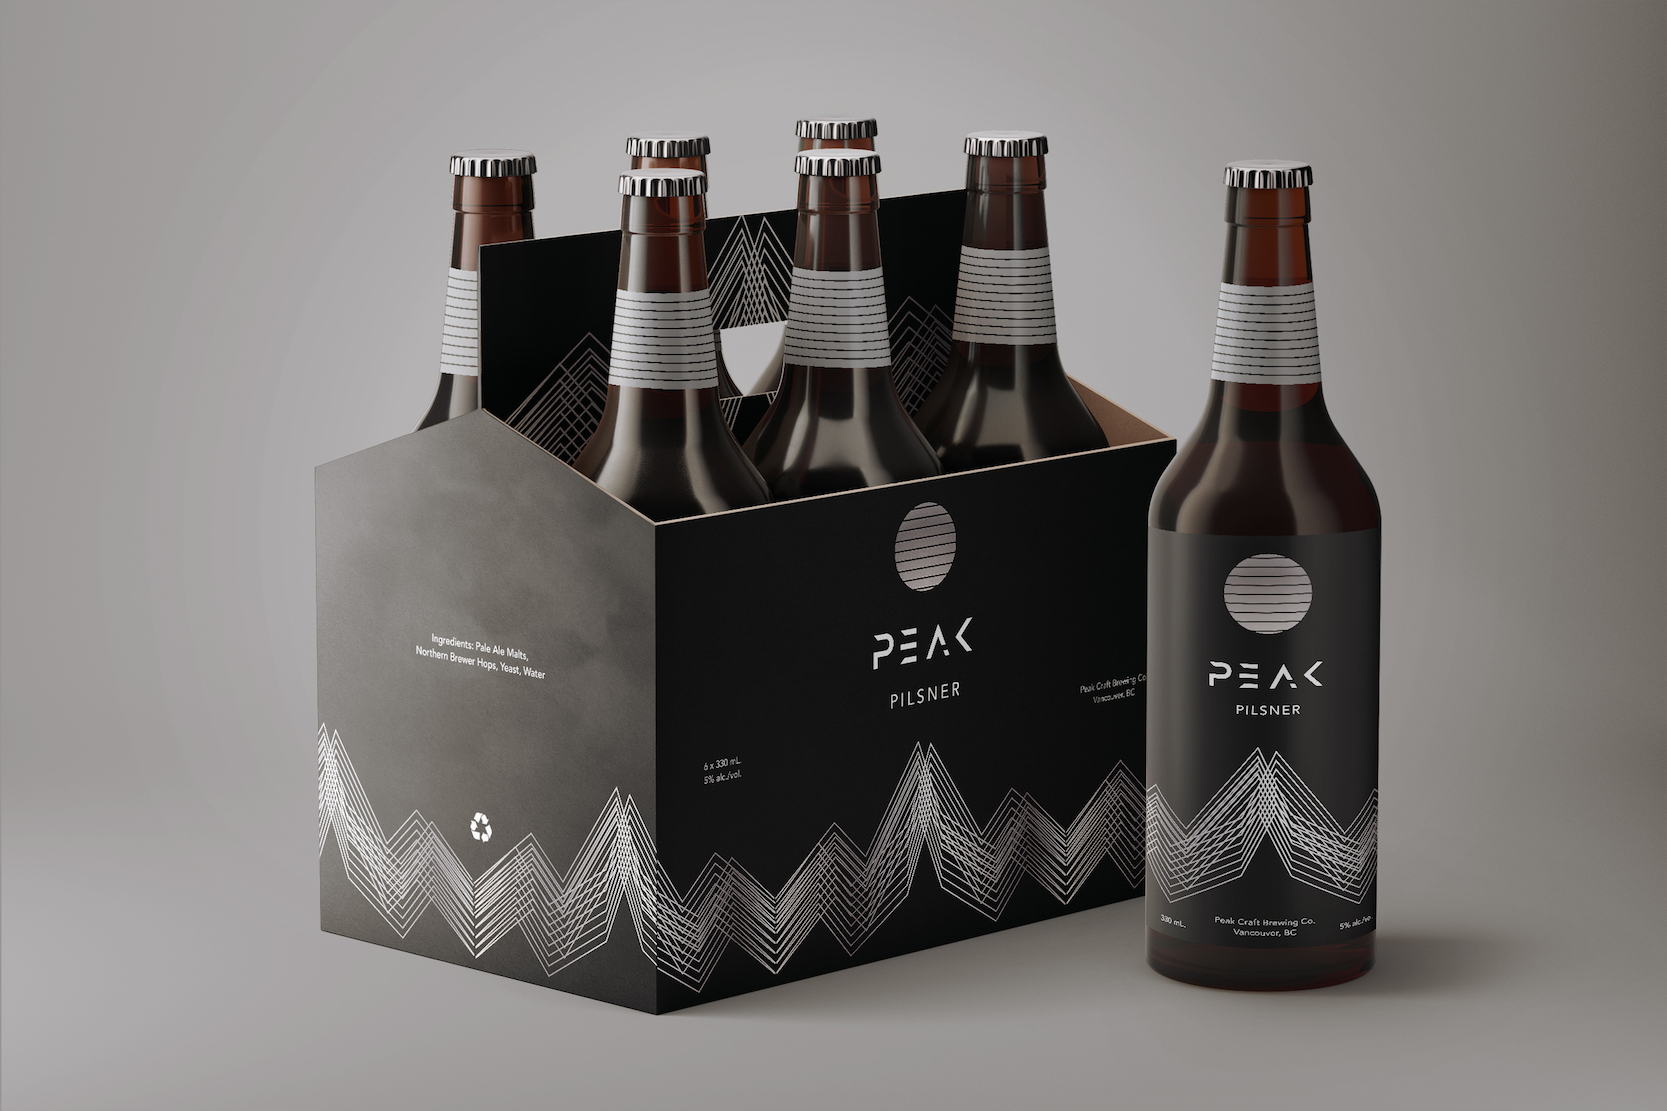 """Geometrical Packaging Design for a Conceptual Craft Beer Brand, """"Peak"""" / World Brand Design Society"""